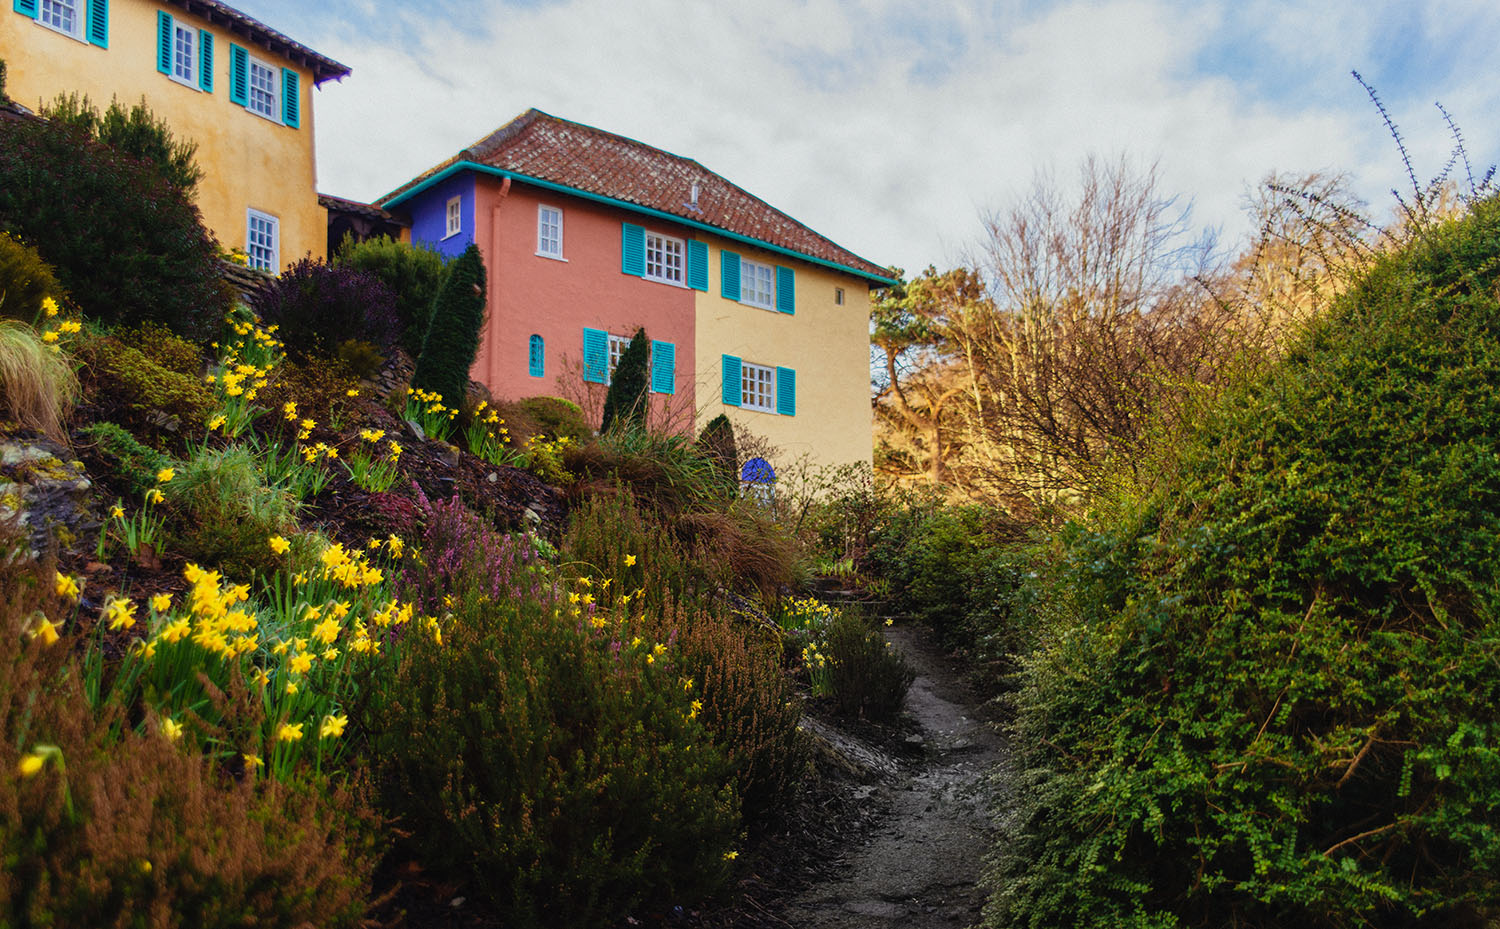 Colorful buildings in Portmeirion, Wales